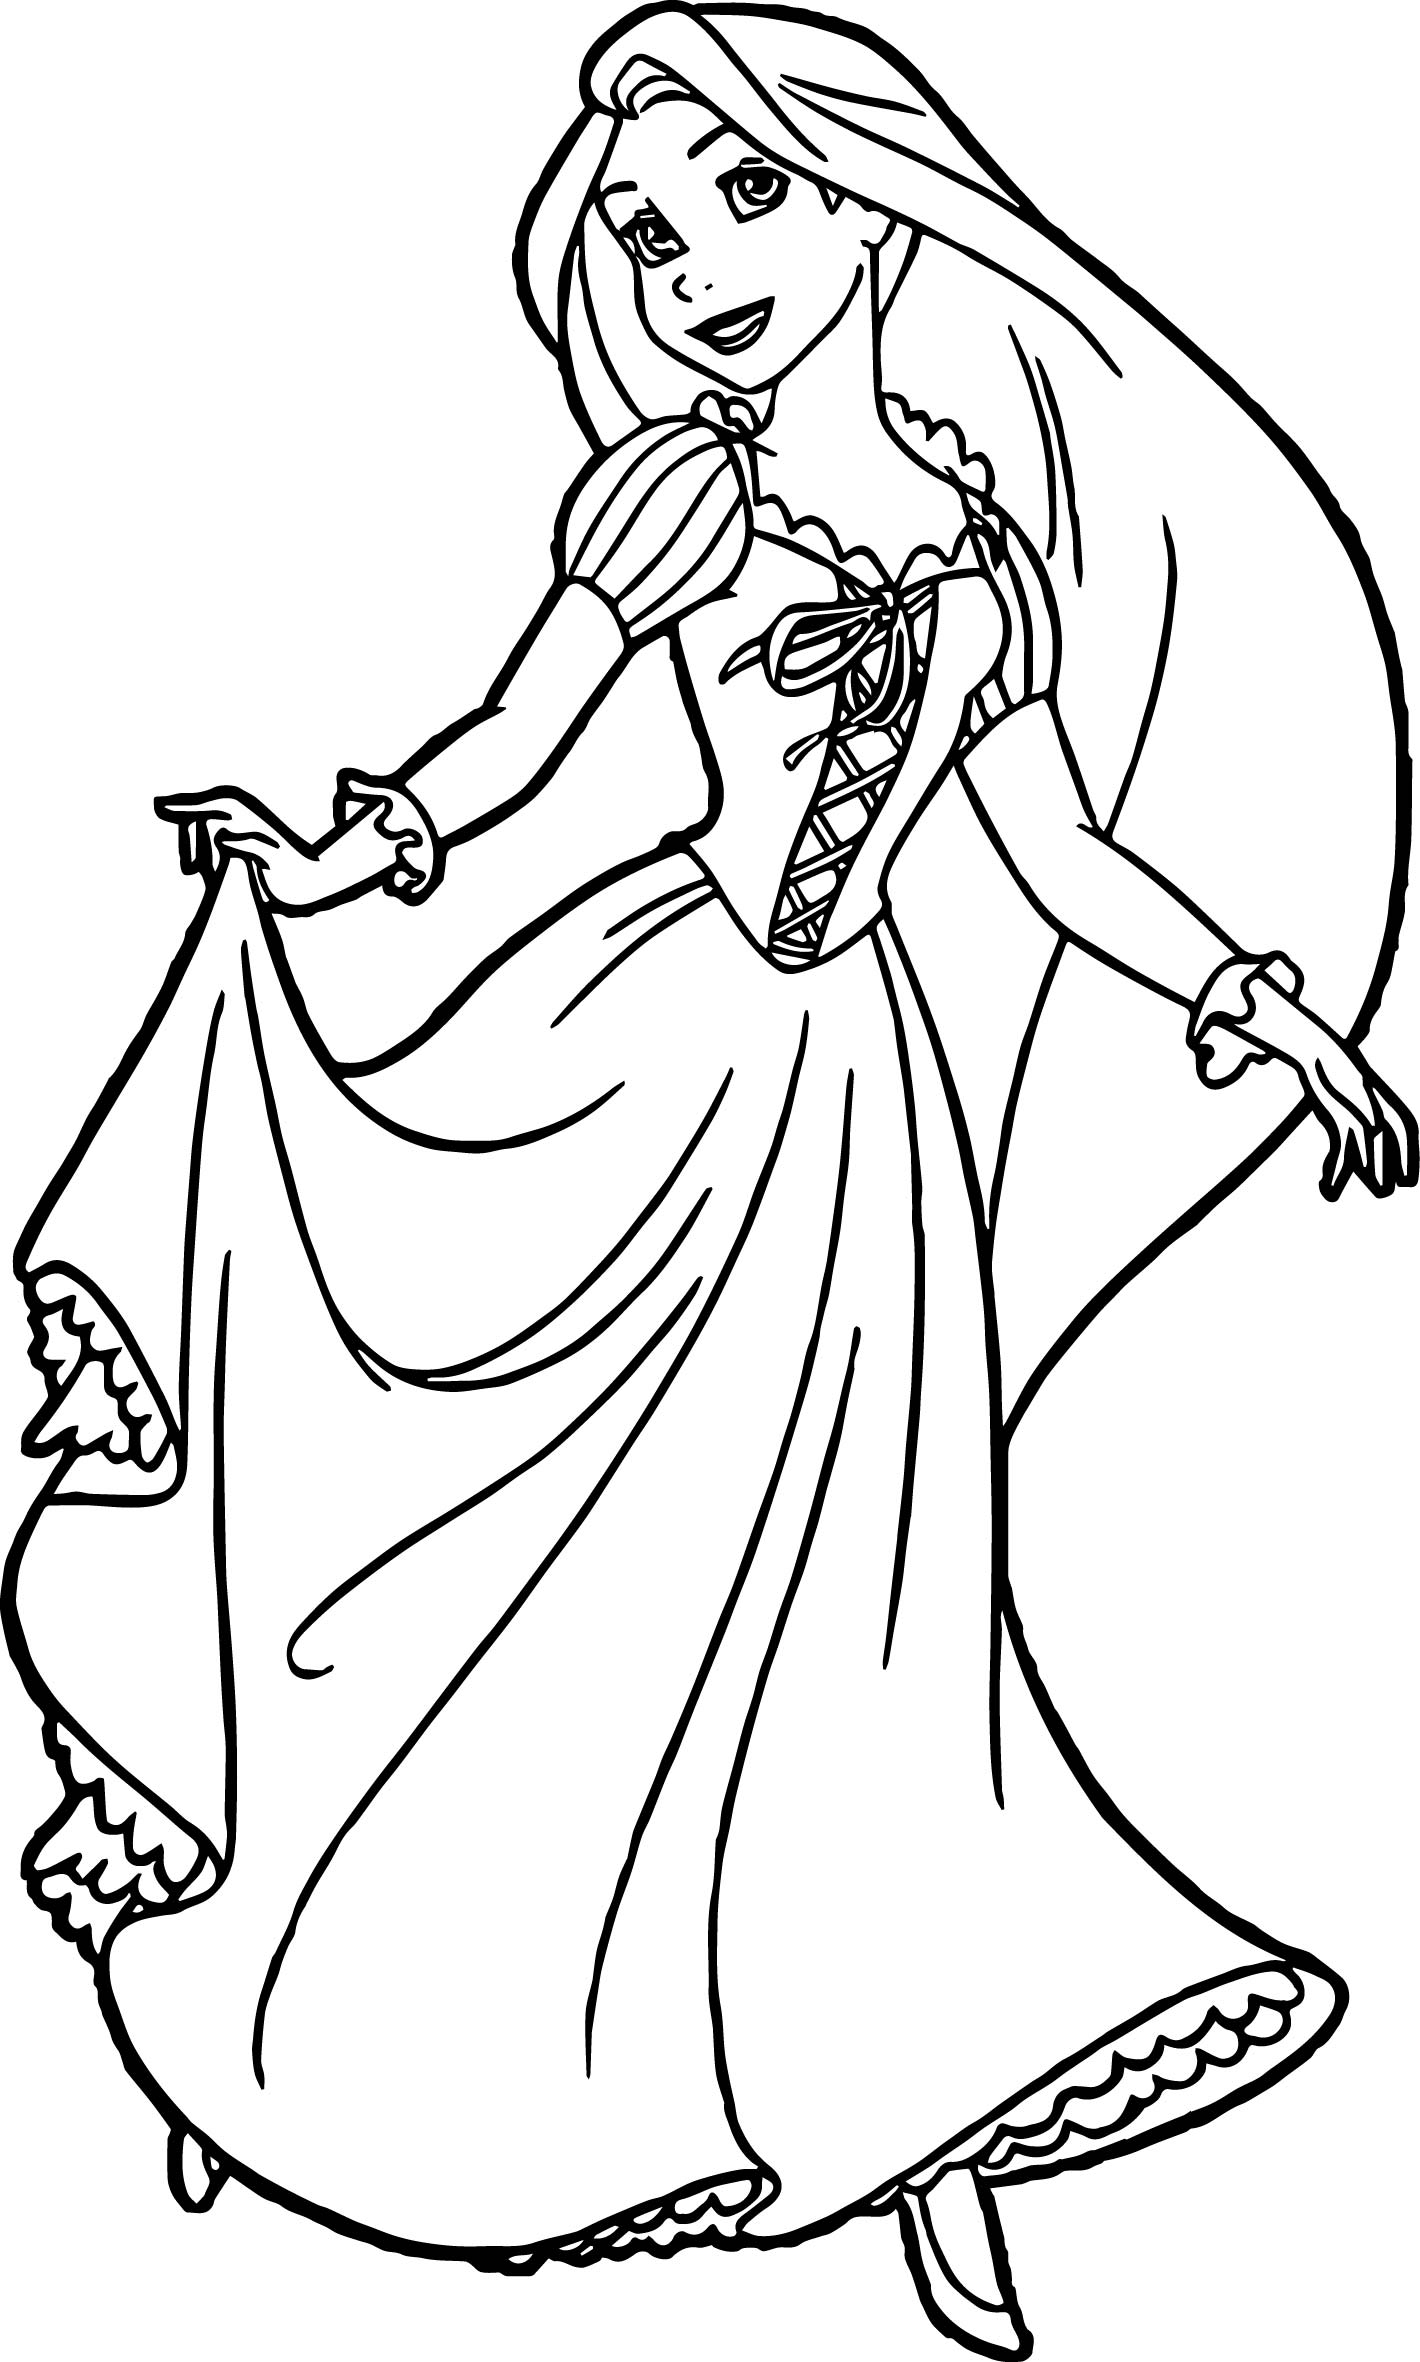 Rapunzel And Flynn Ready Coloring Page | Wecoloringpage